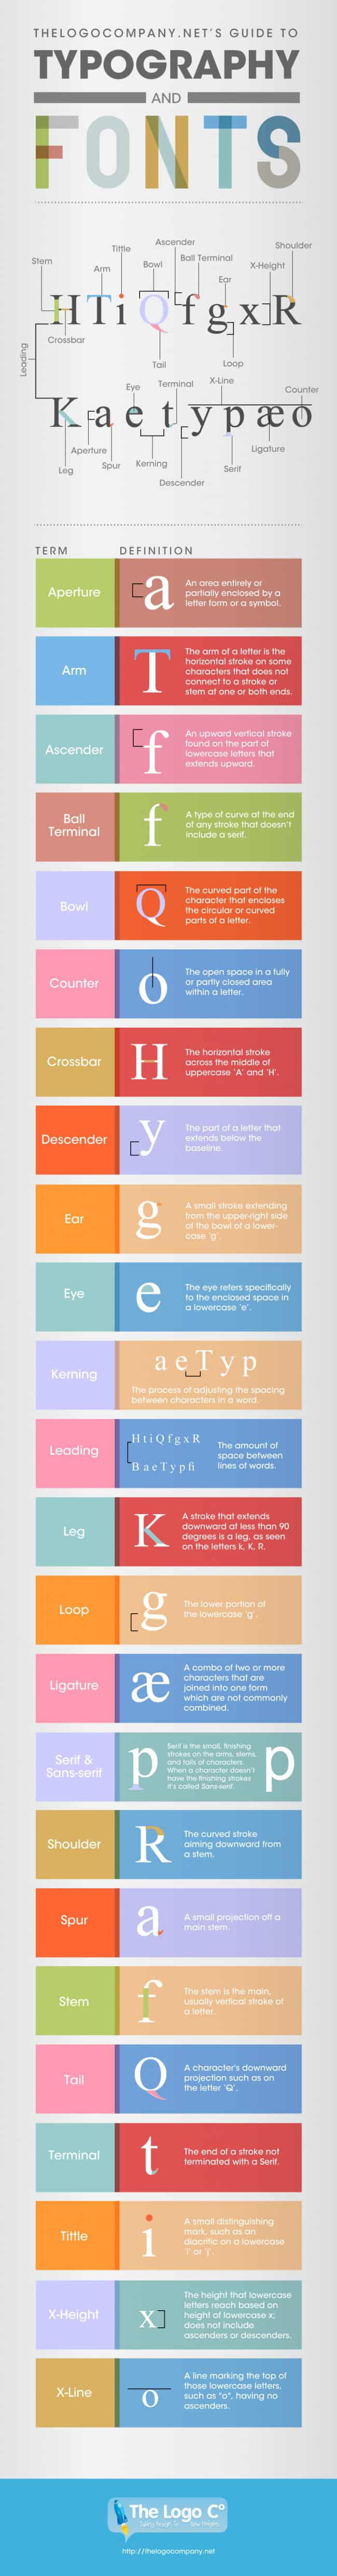 A Definitive Guide to Typography and Fonts